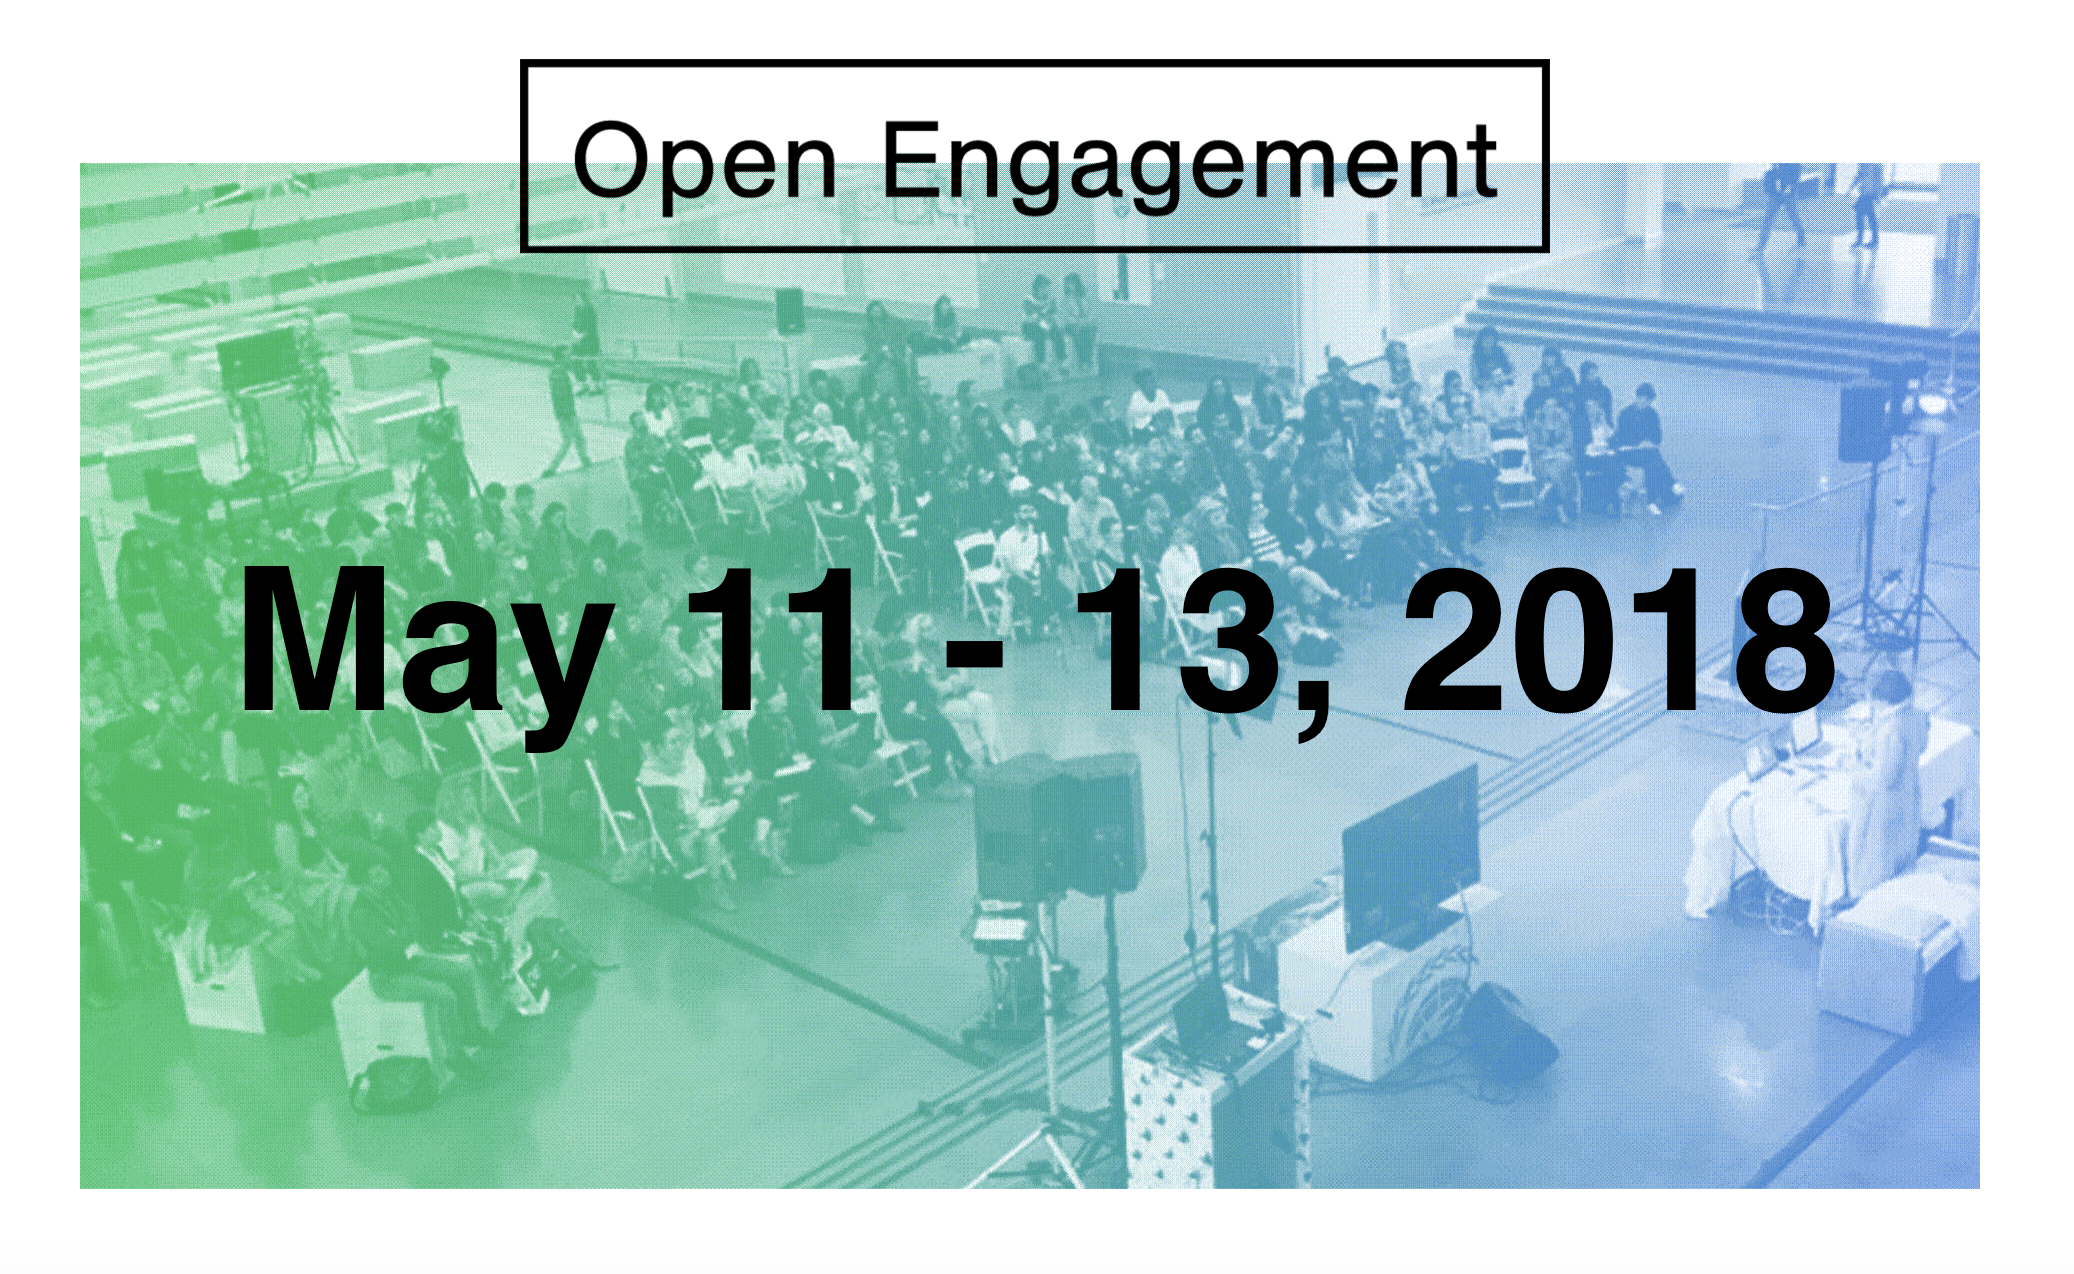 Open Engagement: Sustainability, Queens Museum, May 2018 - Look at Art. Get Paid. presents at Open Engagement (OE) is an annual artist-led conference dedicated to expanding the dialogue around and creating a site of care for the field of socially engaged art. In addition to exploring the intersections of art and activism, this year's conference explores the expansive theme of SUSTAINABILITY and features presenters Lucy Lippard and Mel Chin.